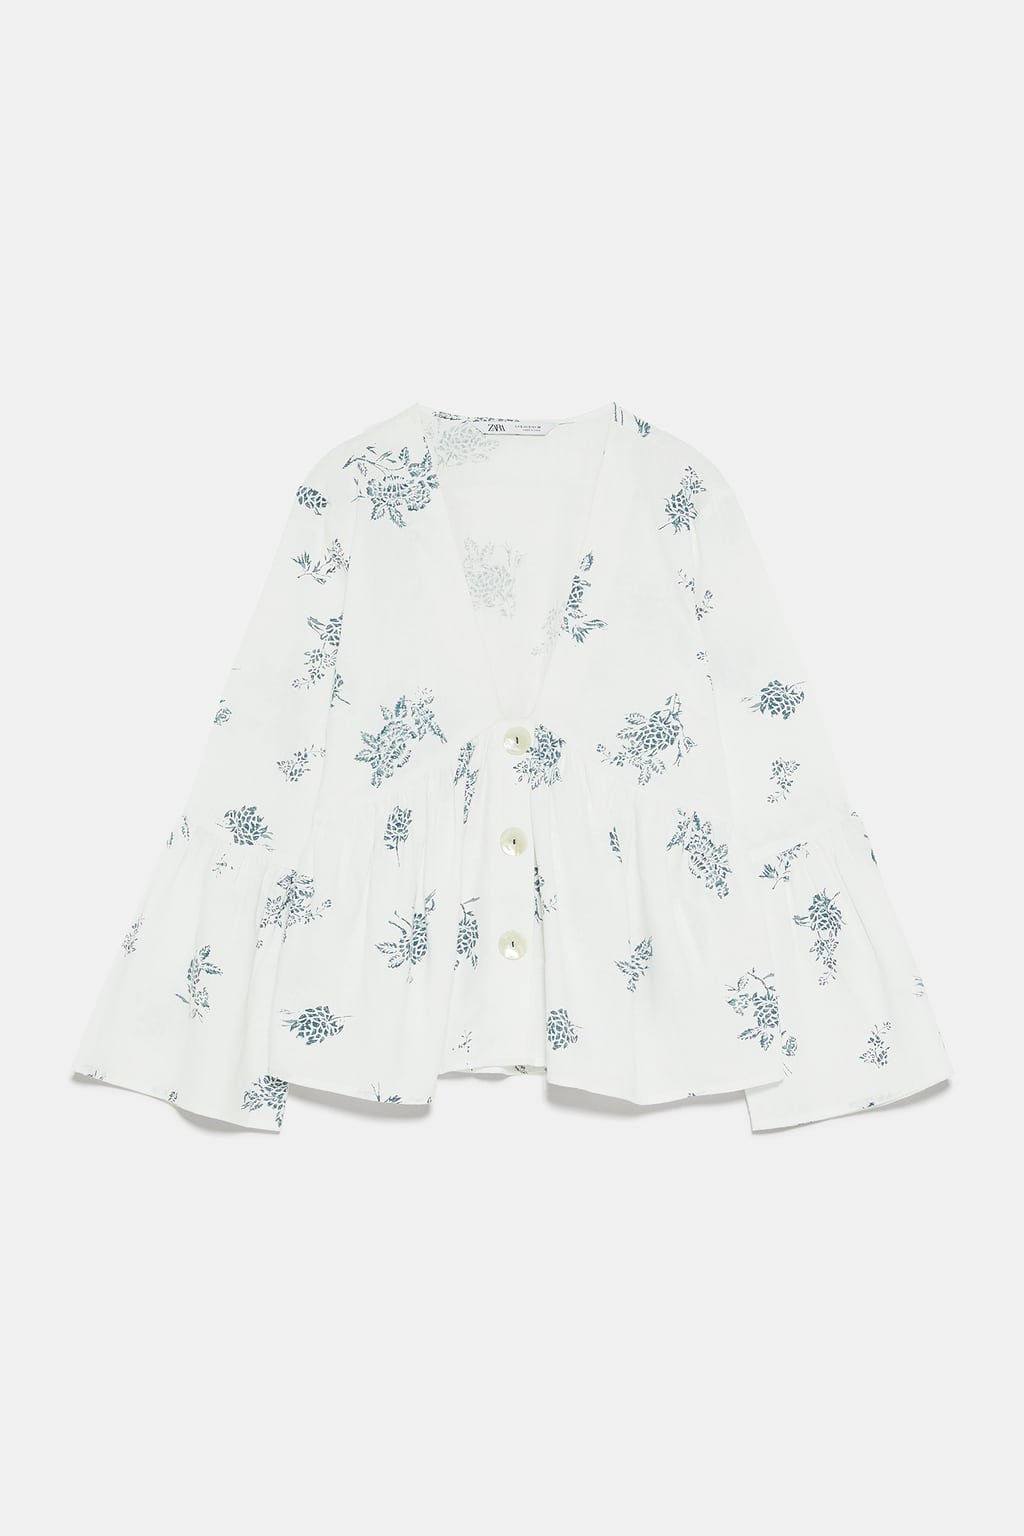 PRINTED BLOUSE WITH BUTTONS - View All-SHIRTS   BLOUSES-WOMAN   ZARA United States white